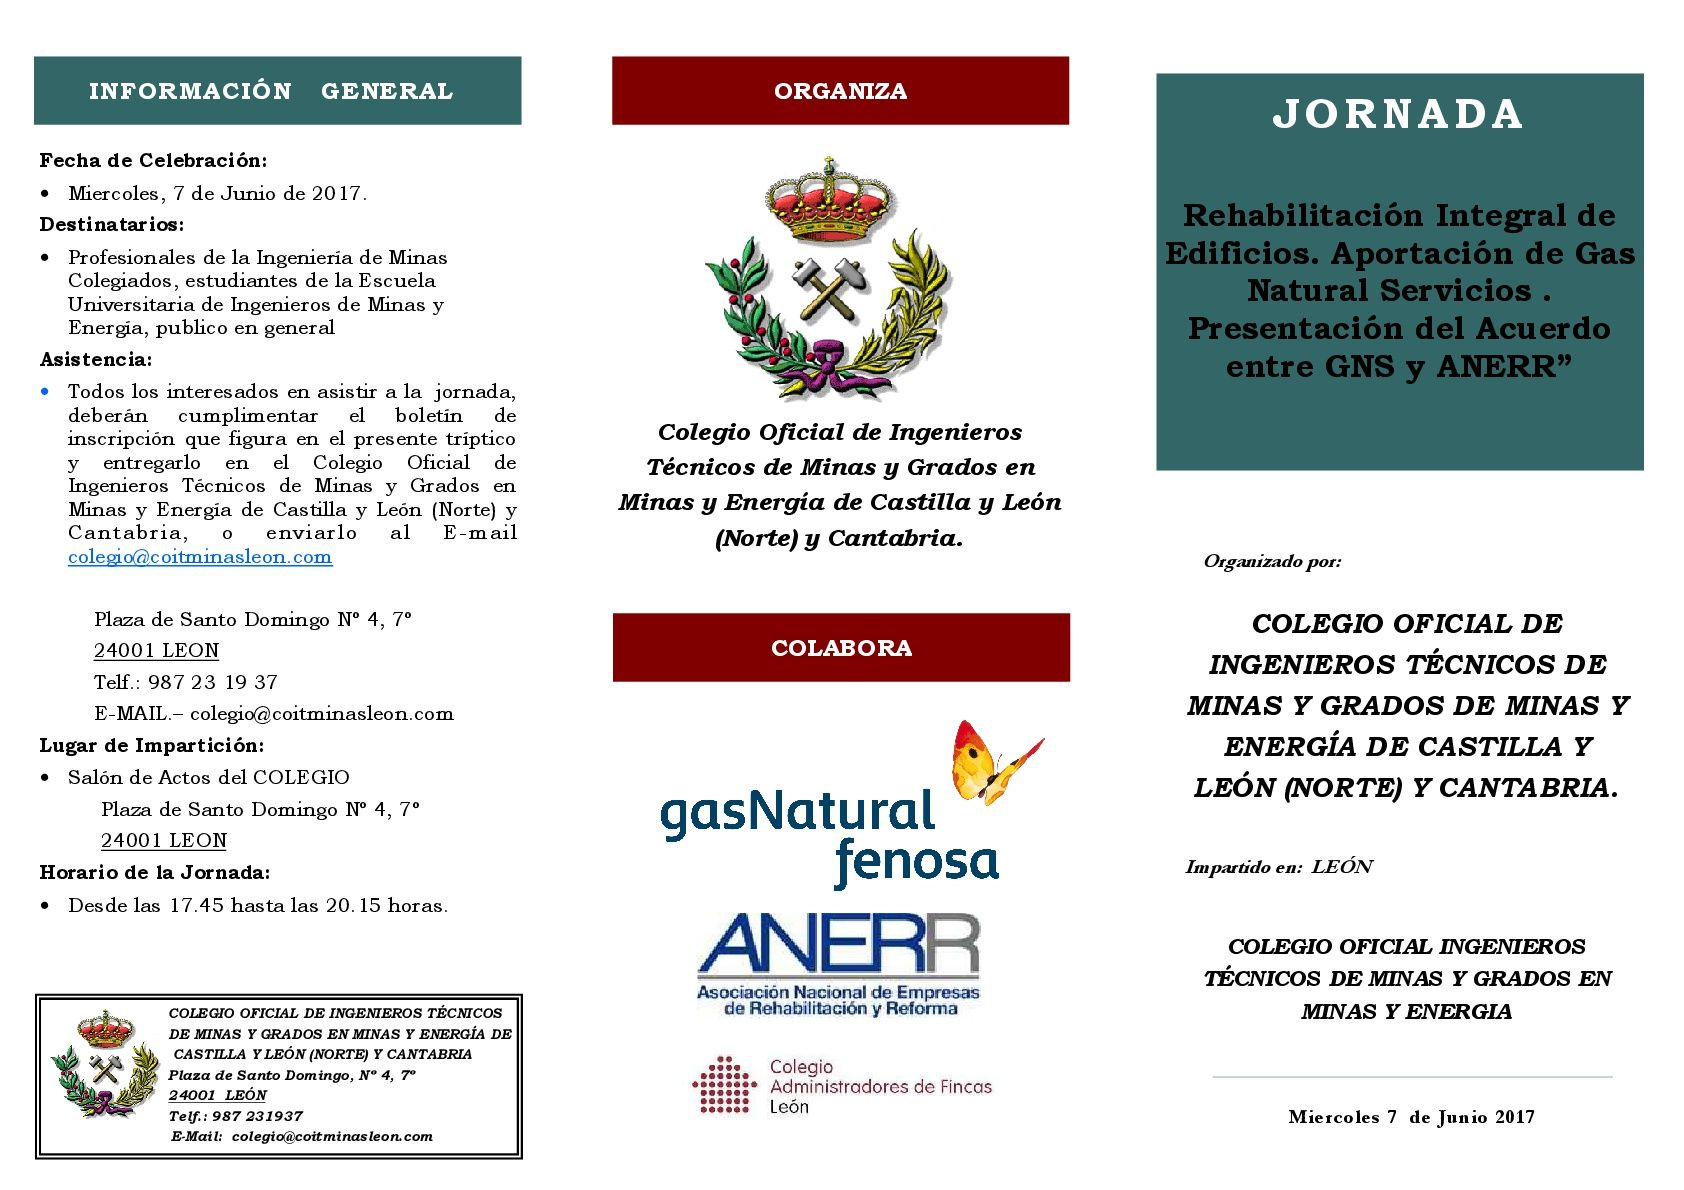 Jornada rehabilitacion integral de edificios aportacion for Gas natural servicios